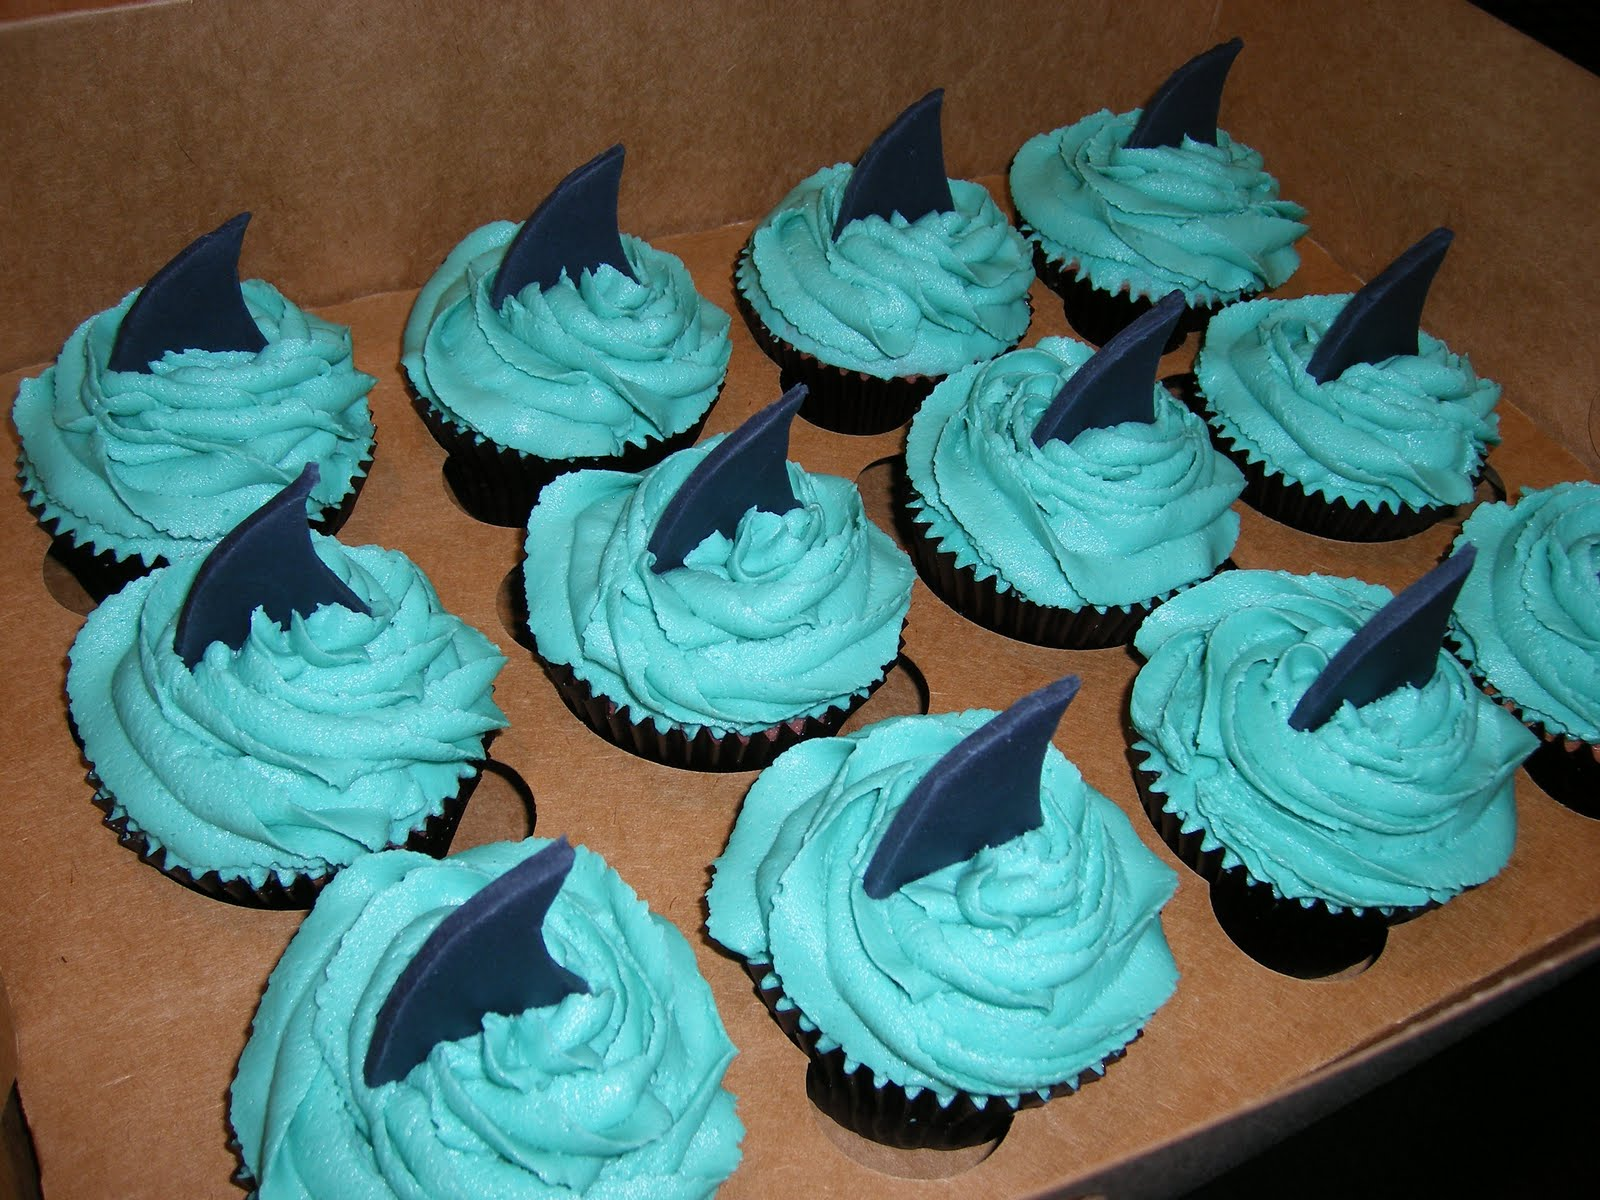 One Sweet Hobby: Shark Fin Cupcakes